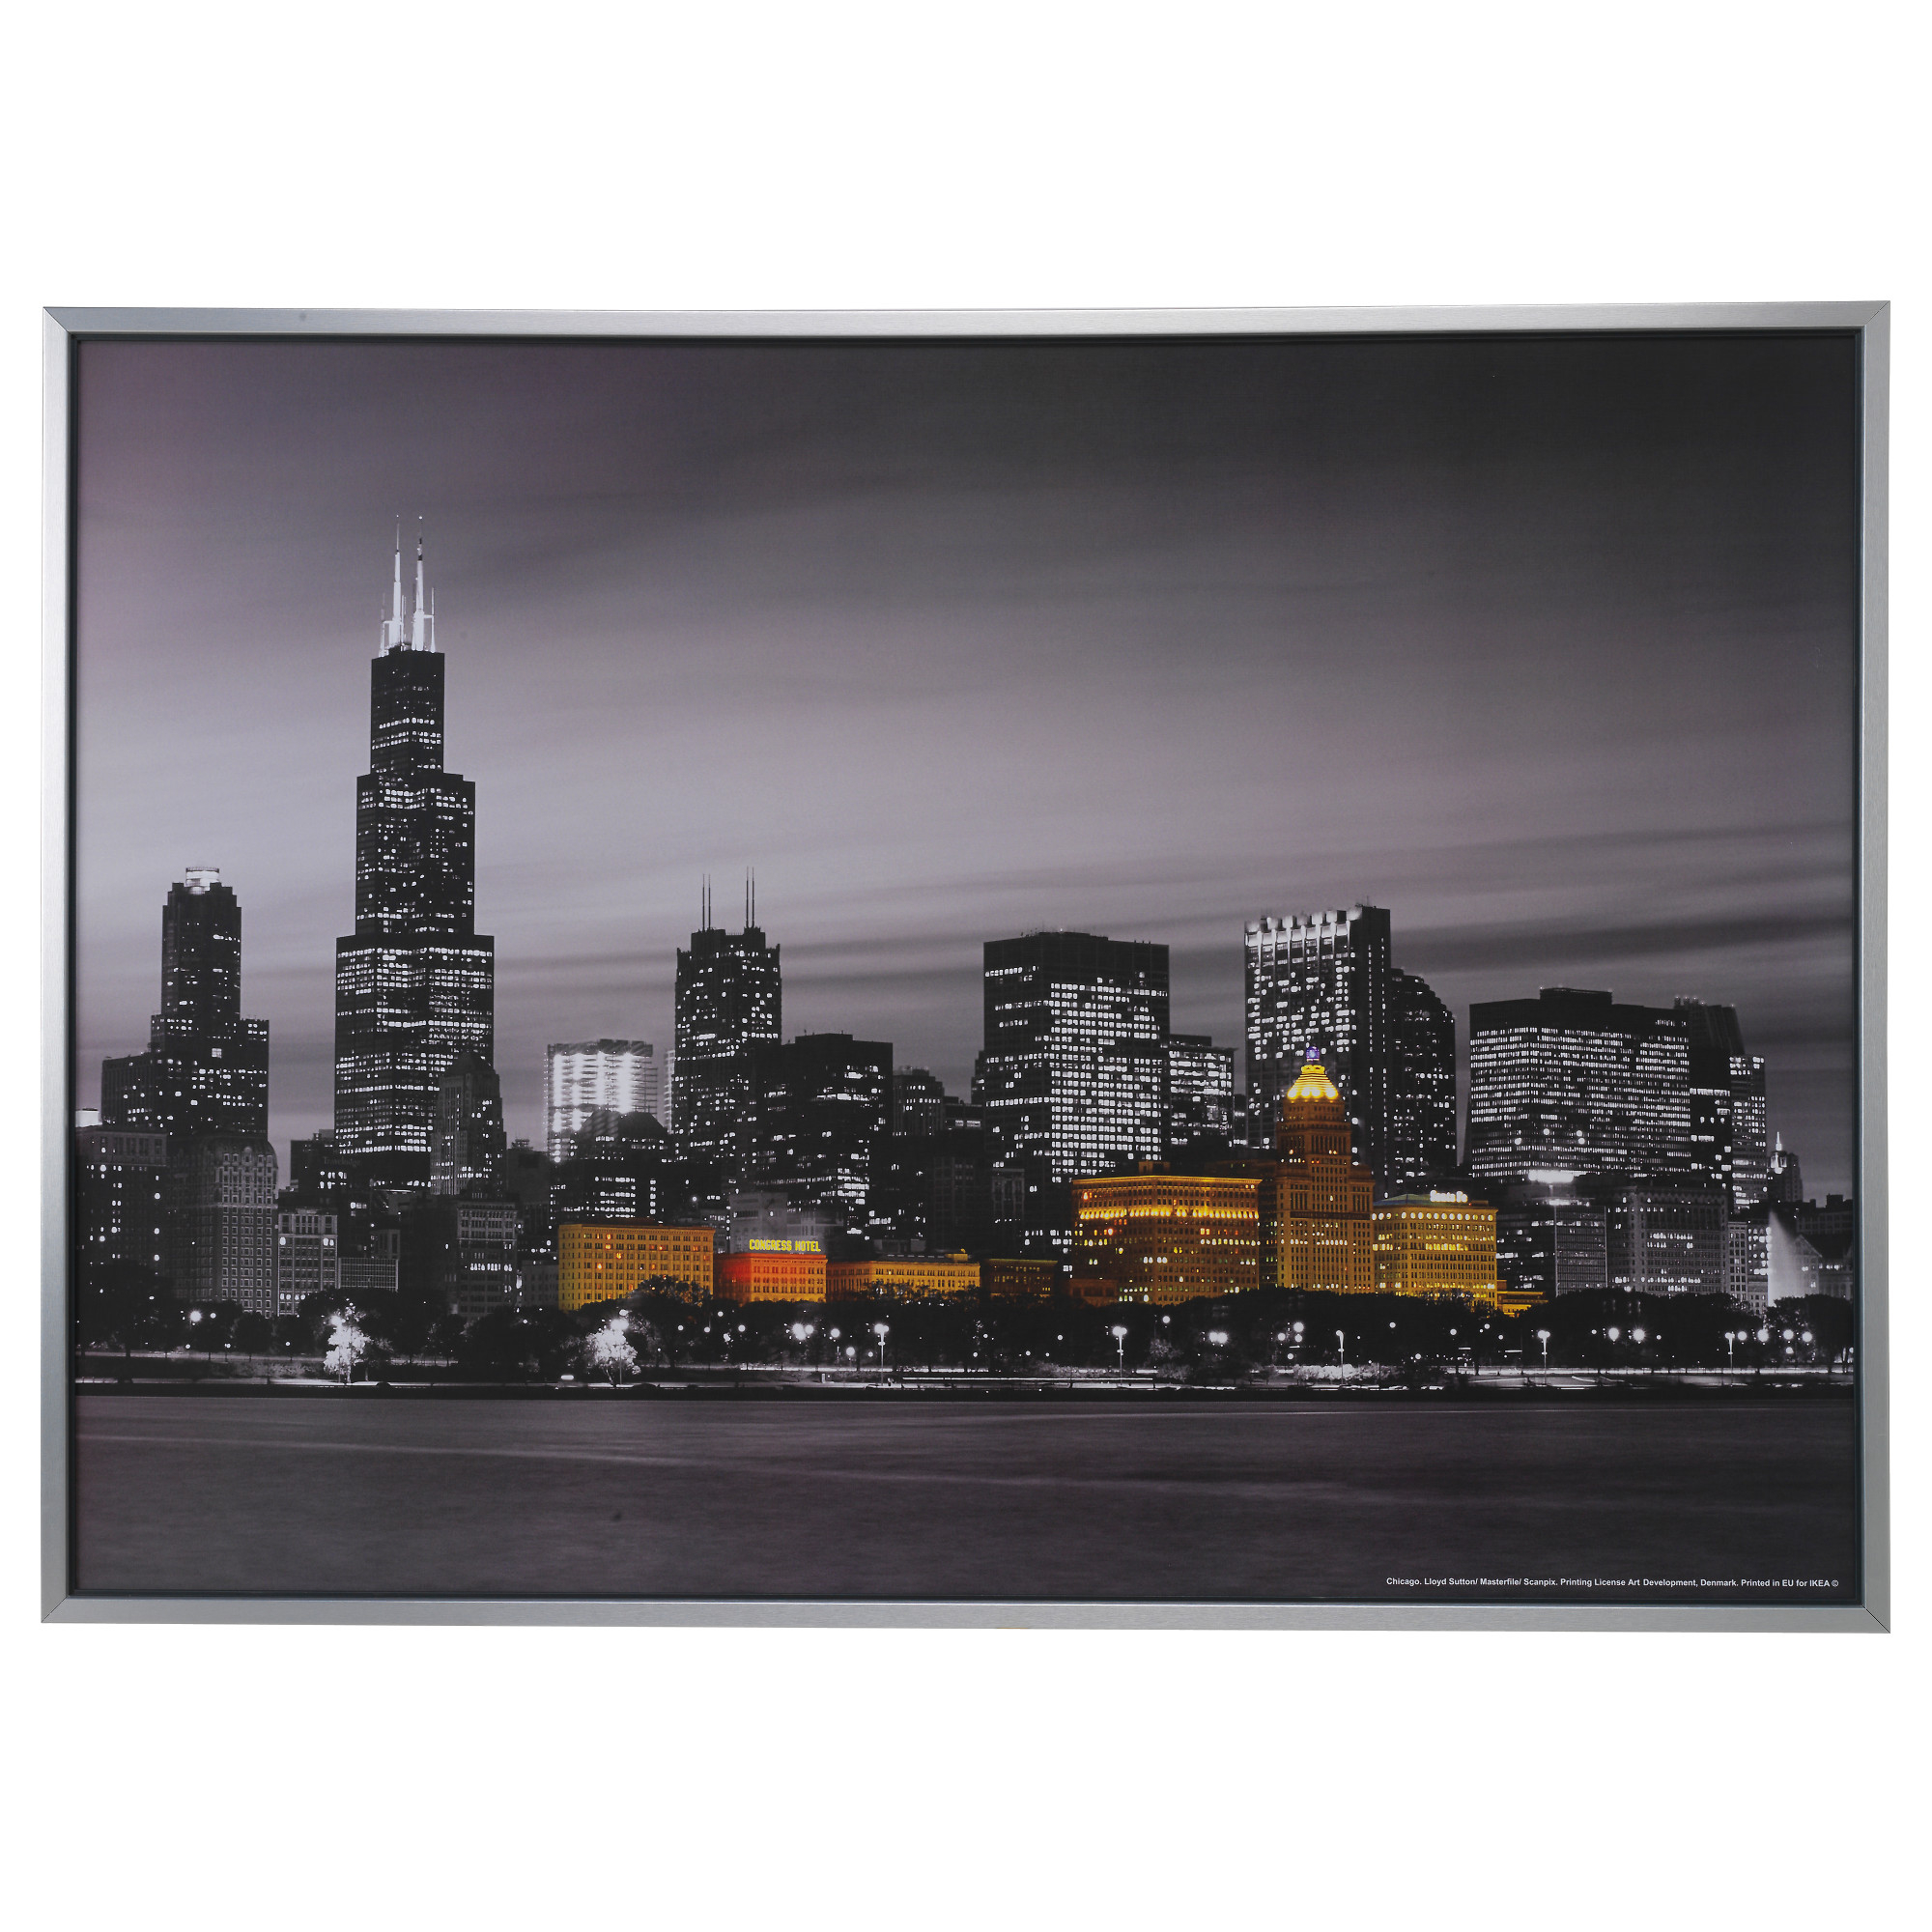 klamby picture chicago width 55 height 39 width 140